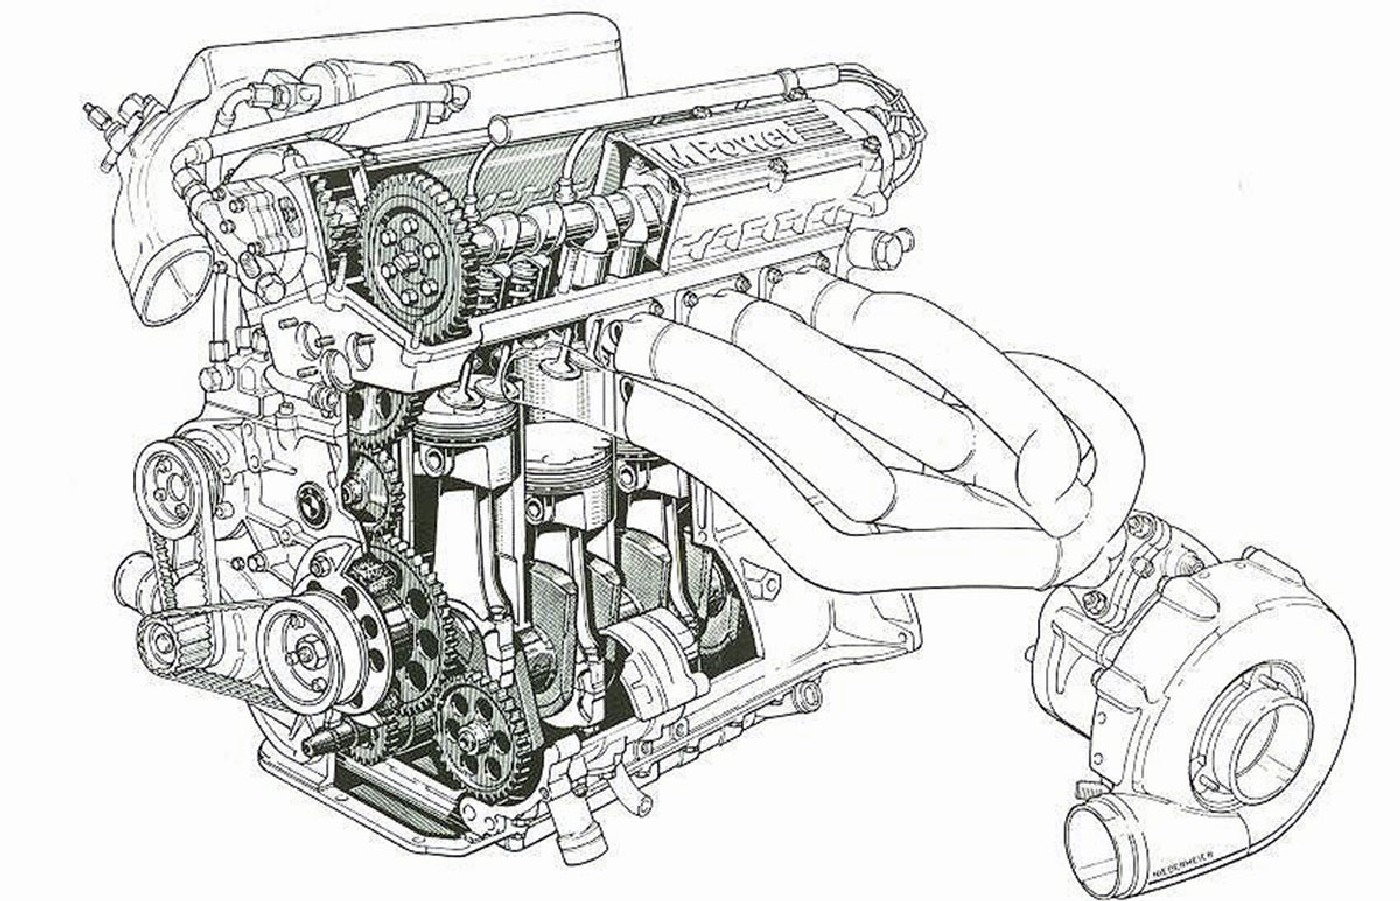 The m10 bmws most successful engine name bmw m12 engine diagramg views 20778 size 3316 kb malvernweather Gallery